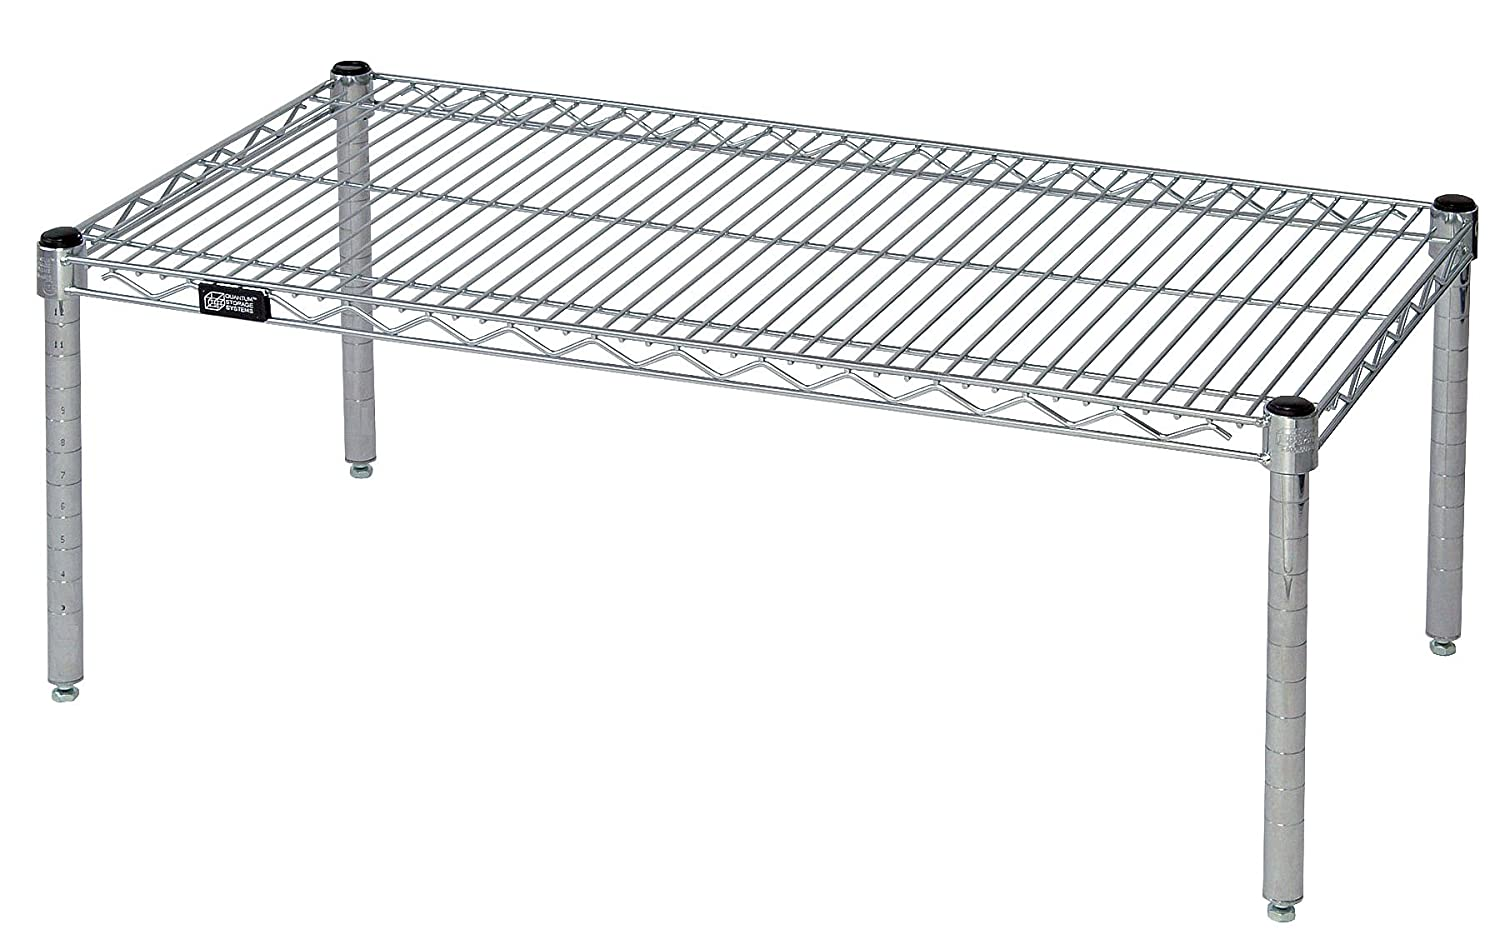 "Quantum Storage Systems 183614PC Shelf Platform Rack, Chrome Finish, 18"" Width x 36"" Length x 14"" Height"